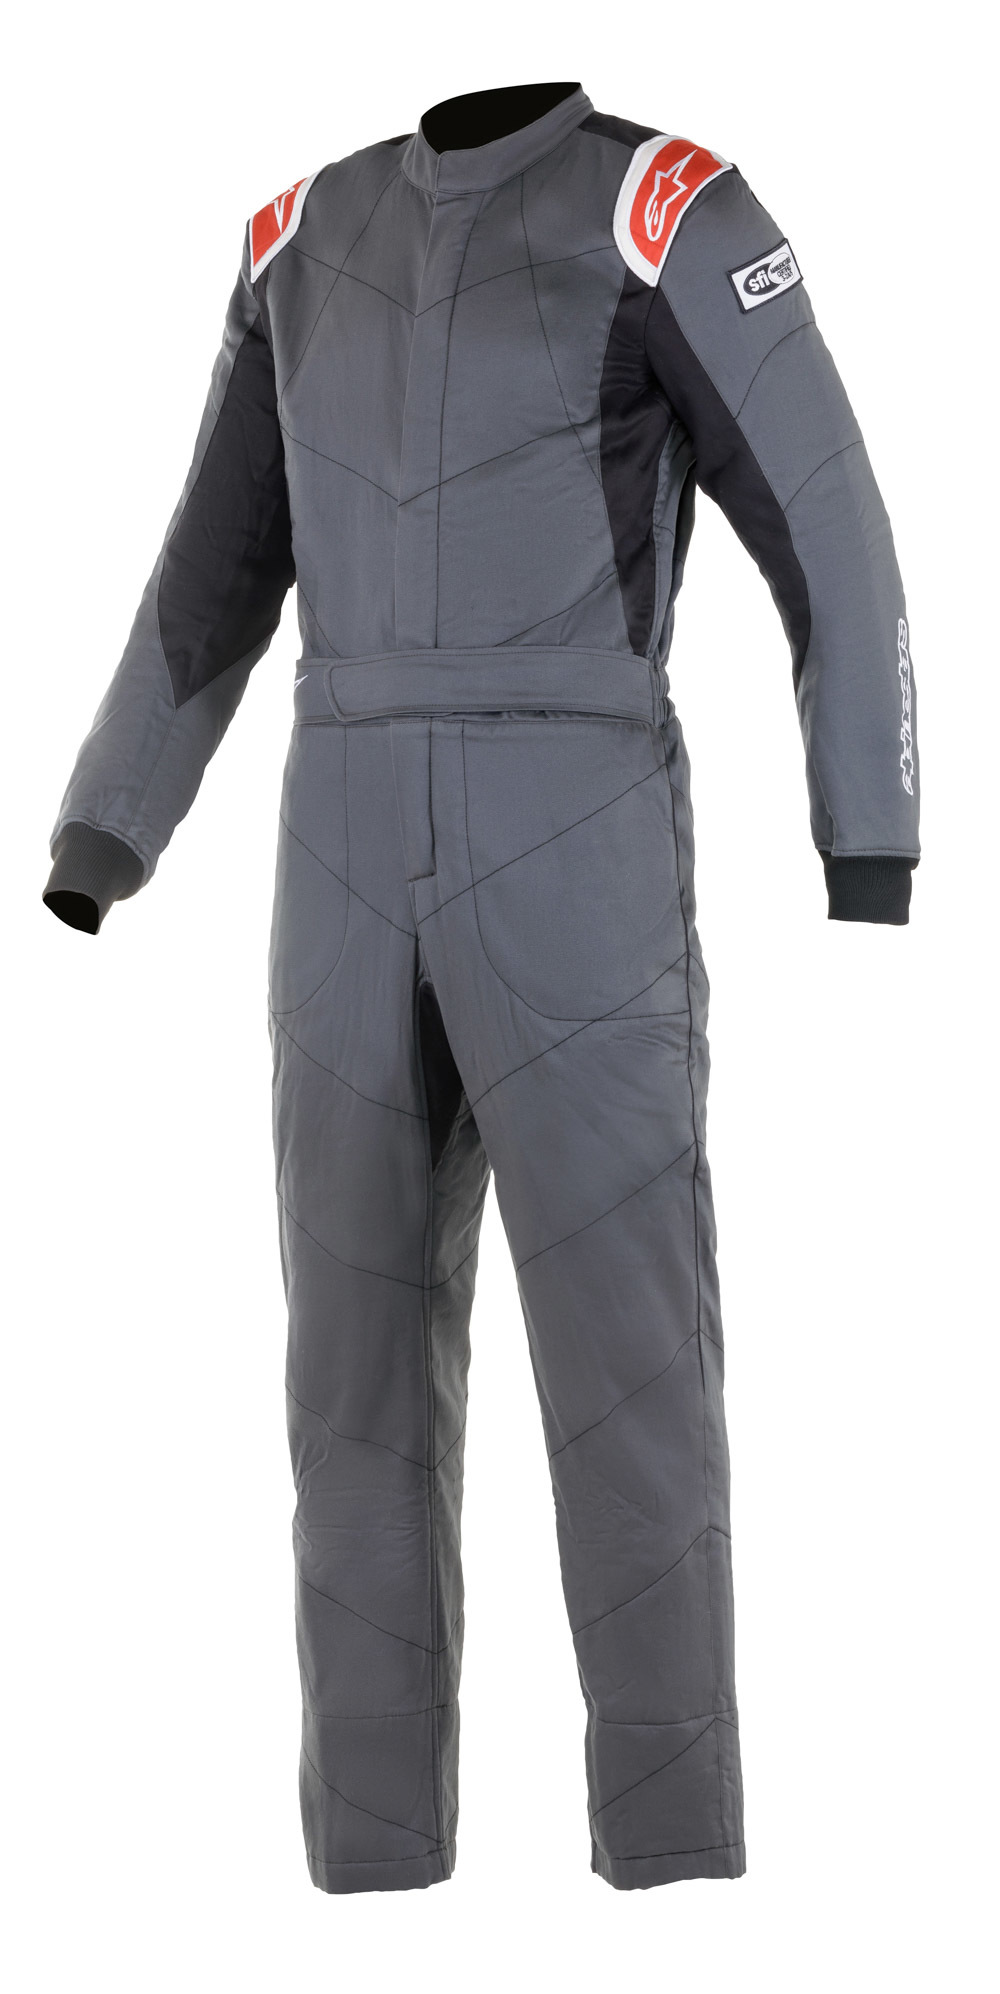 Alpinestars USA 3355921-143-60 Suit, Knoxville V2, Driving, 1 Piece, SFI 3.2A/5, Boot-Cut, Triple Layer, Fire Retardant Fabric, Gray / Red, Size 60, X-Large, Each